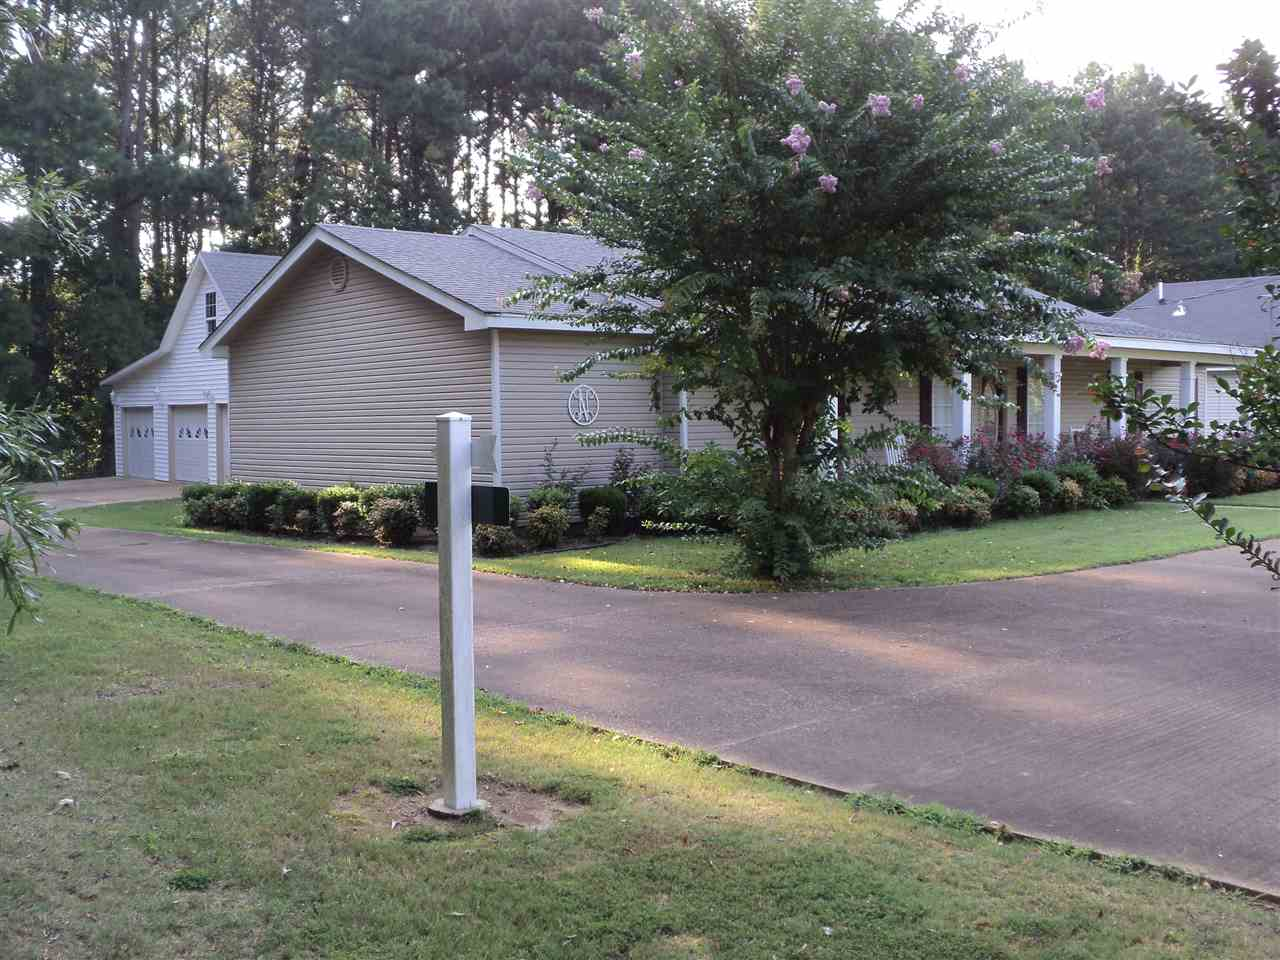 43 County Rd. 174 Corinth, MS 38834 - MLS #: 10008785